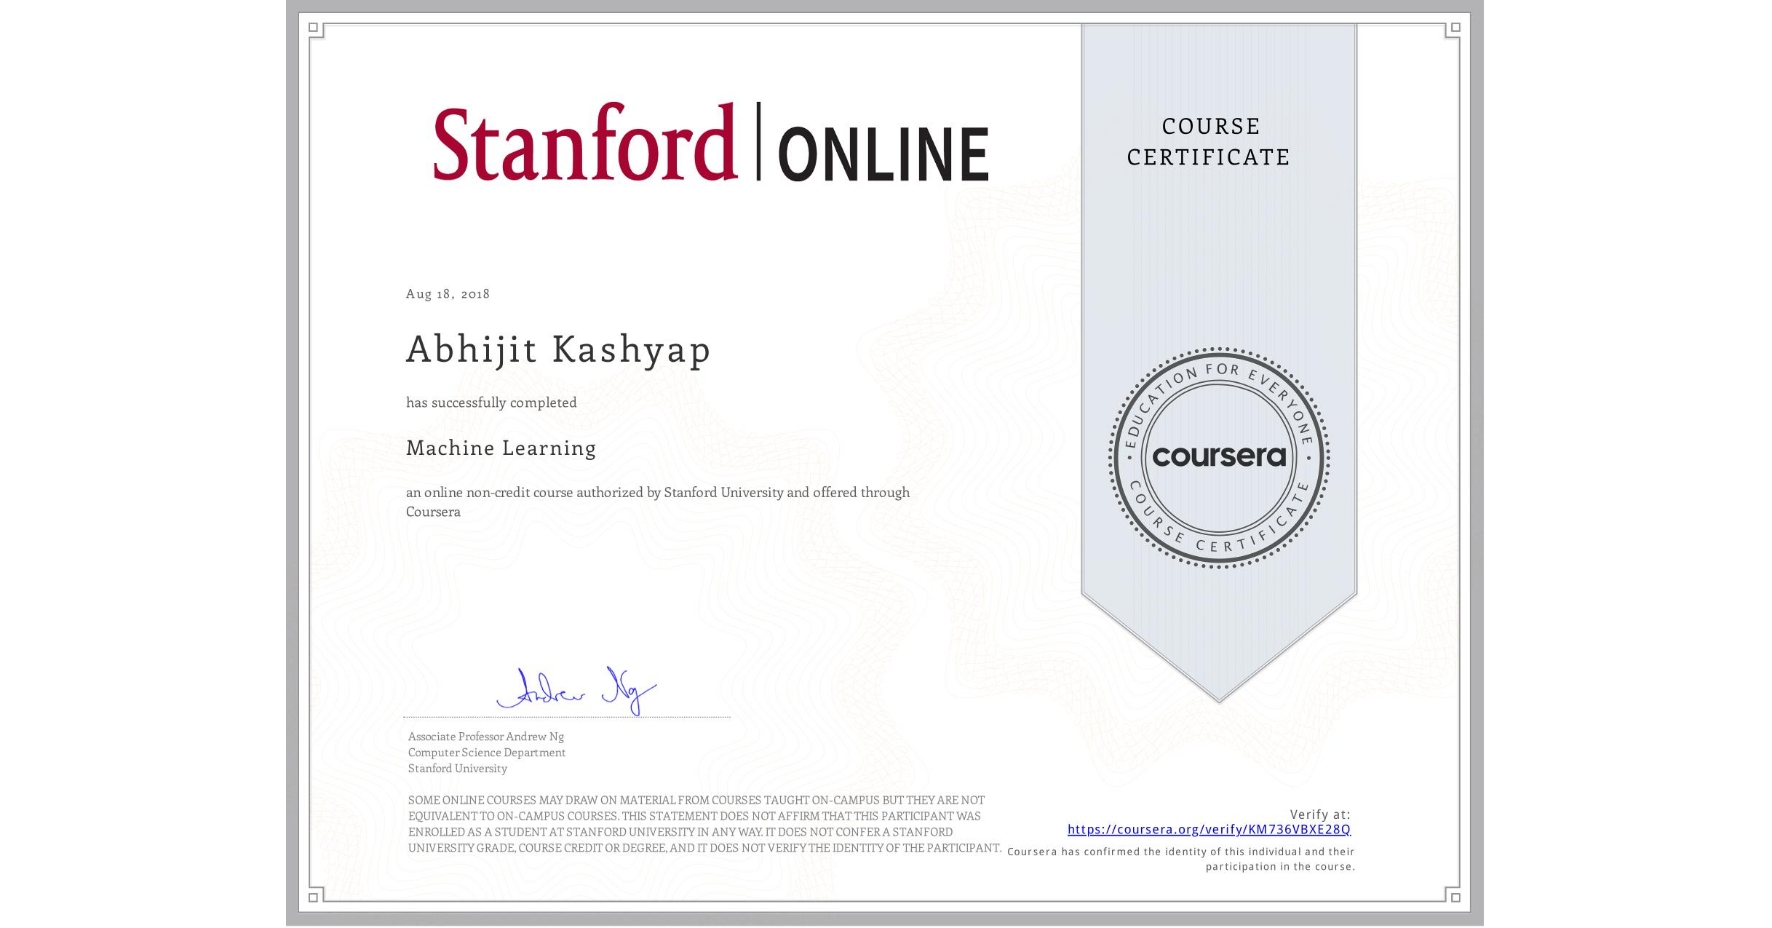 View certificate for Abhijit Kashyap, Machine Learning, an online non-credit course authorized by Stanford University and offered through Coursera